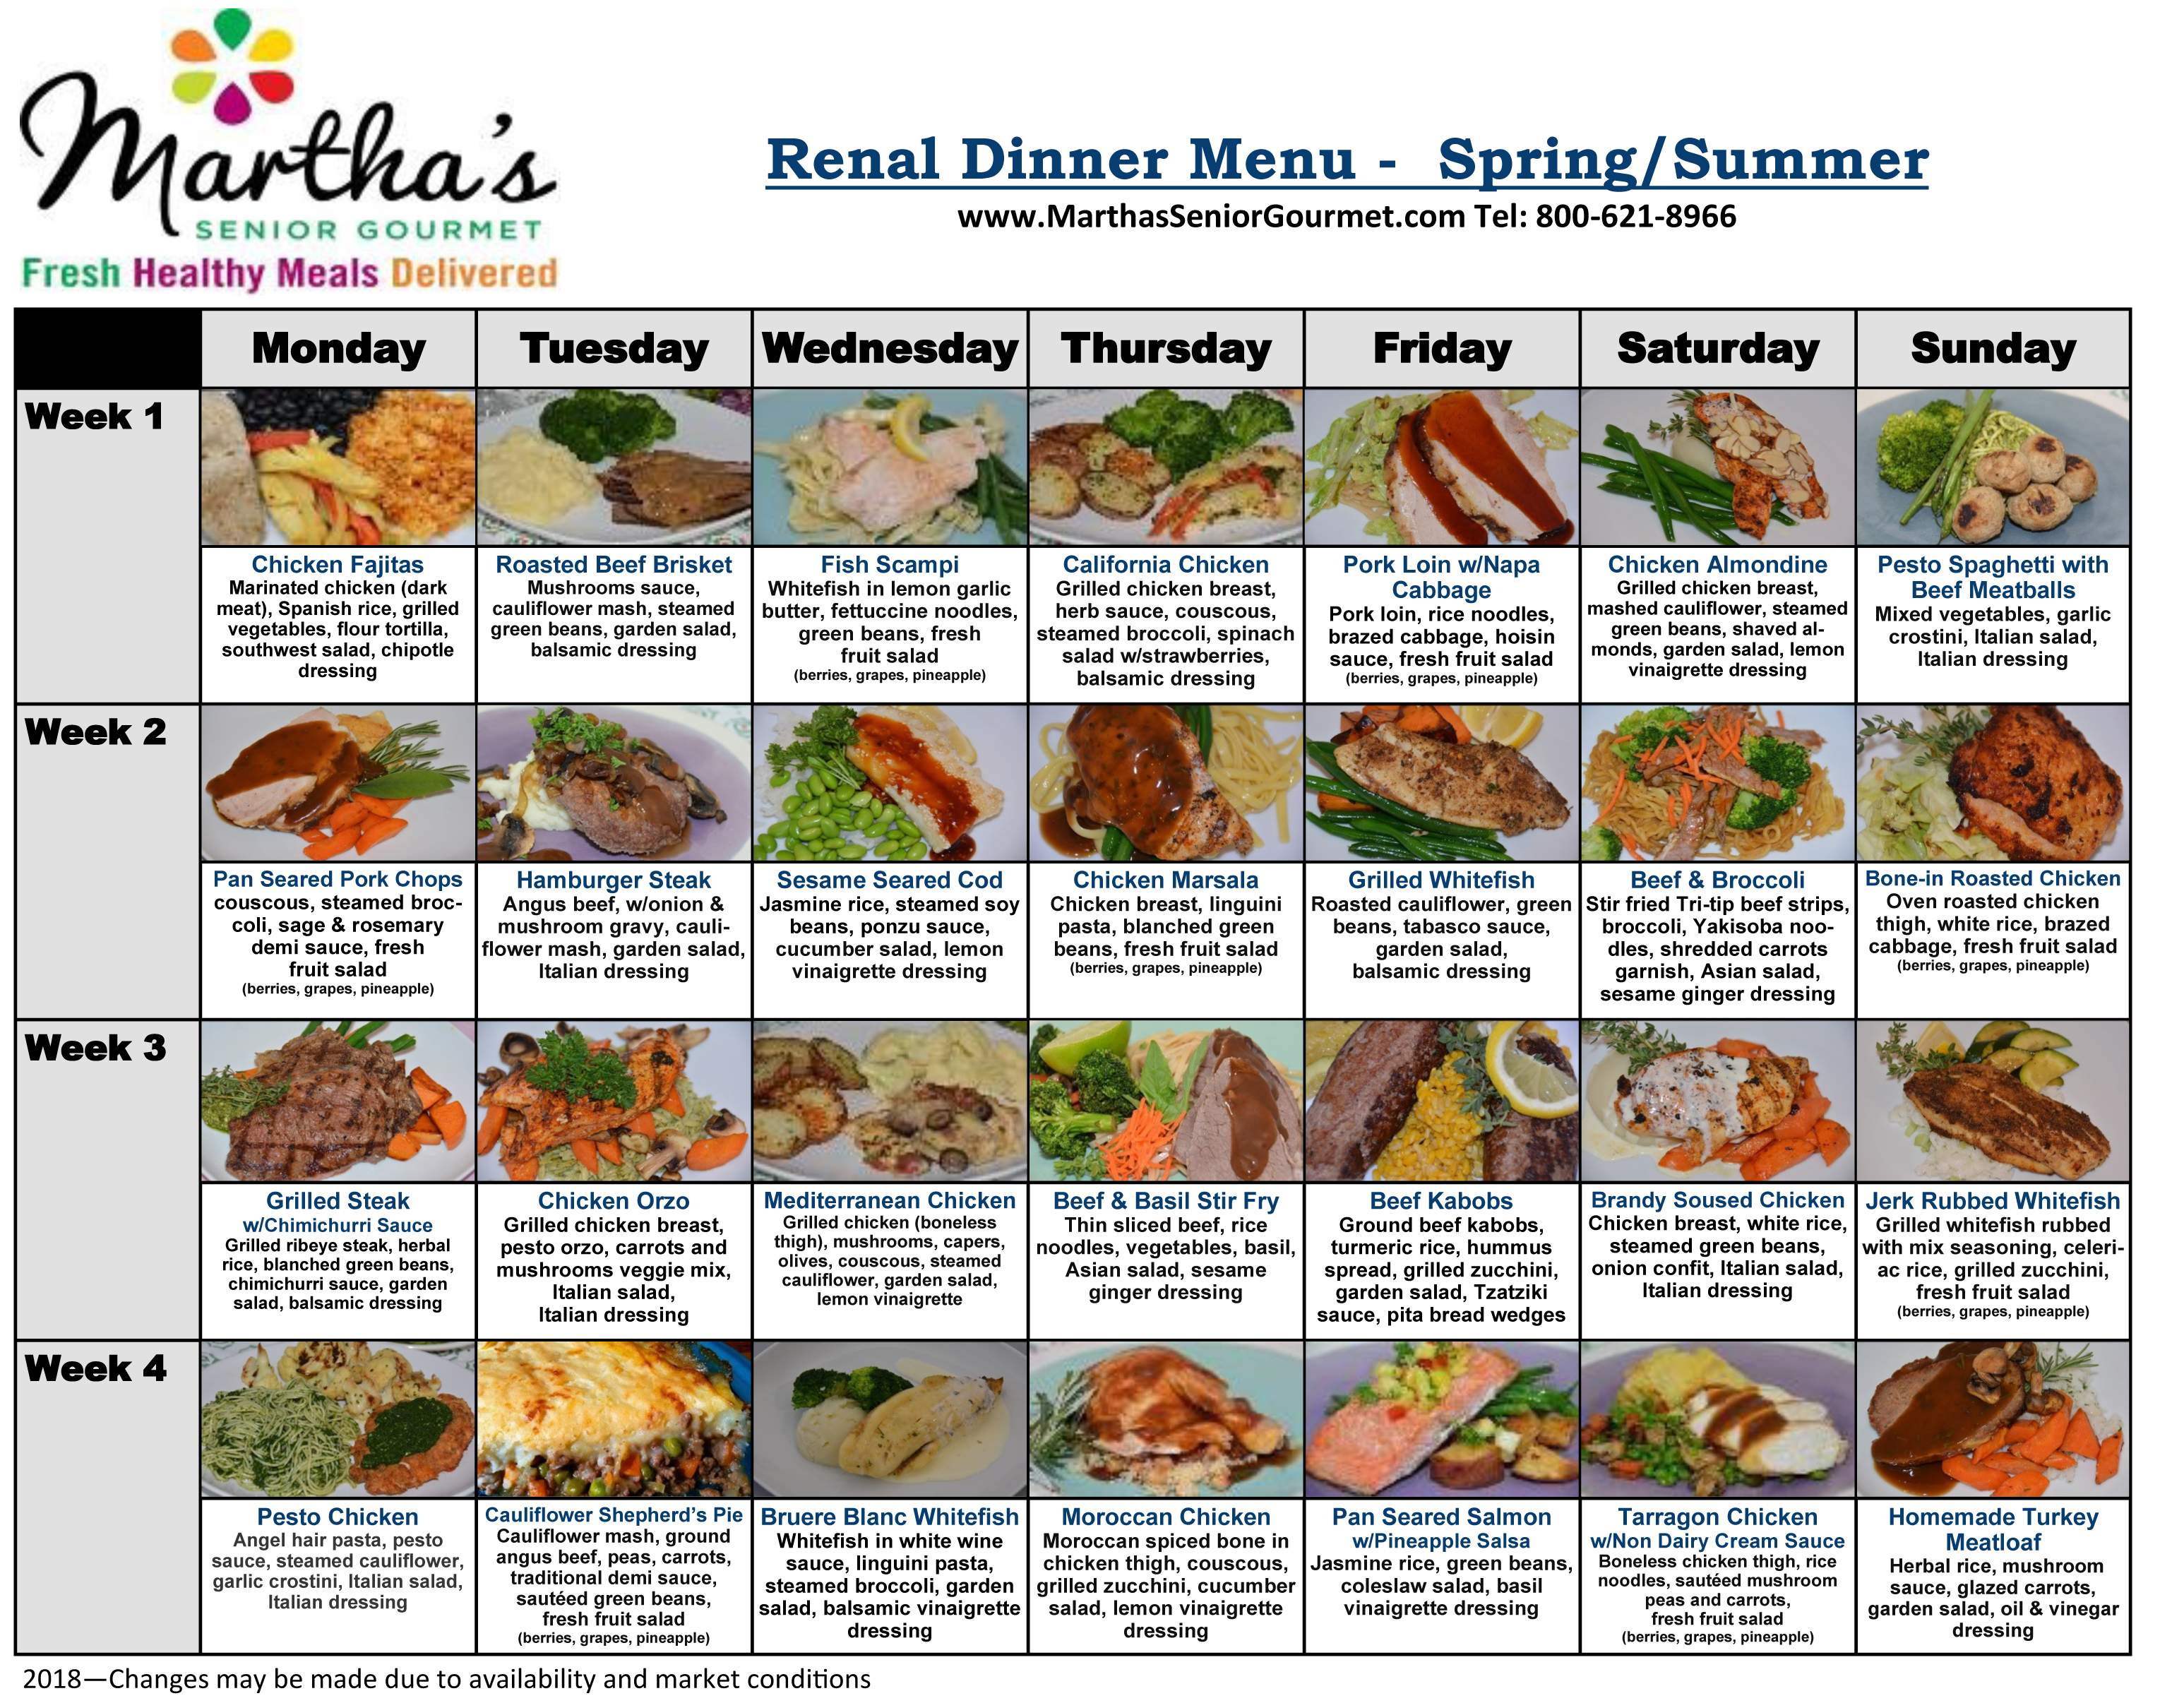 Renal Diabetic Dinner Menu - Spring/Summer